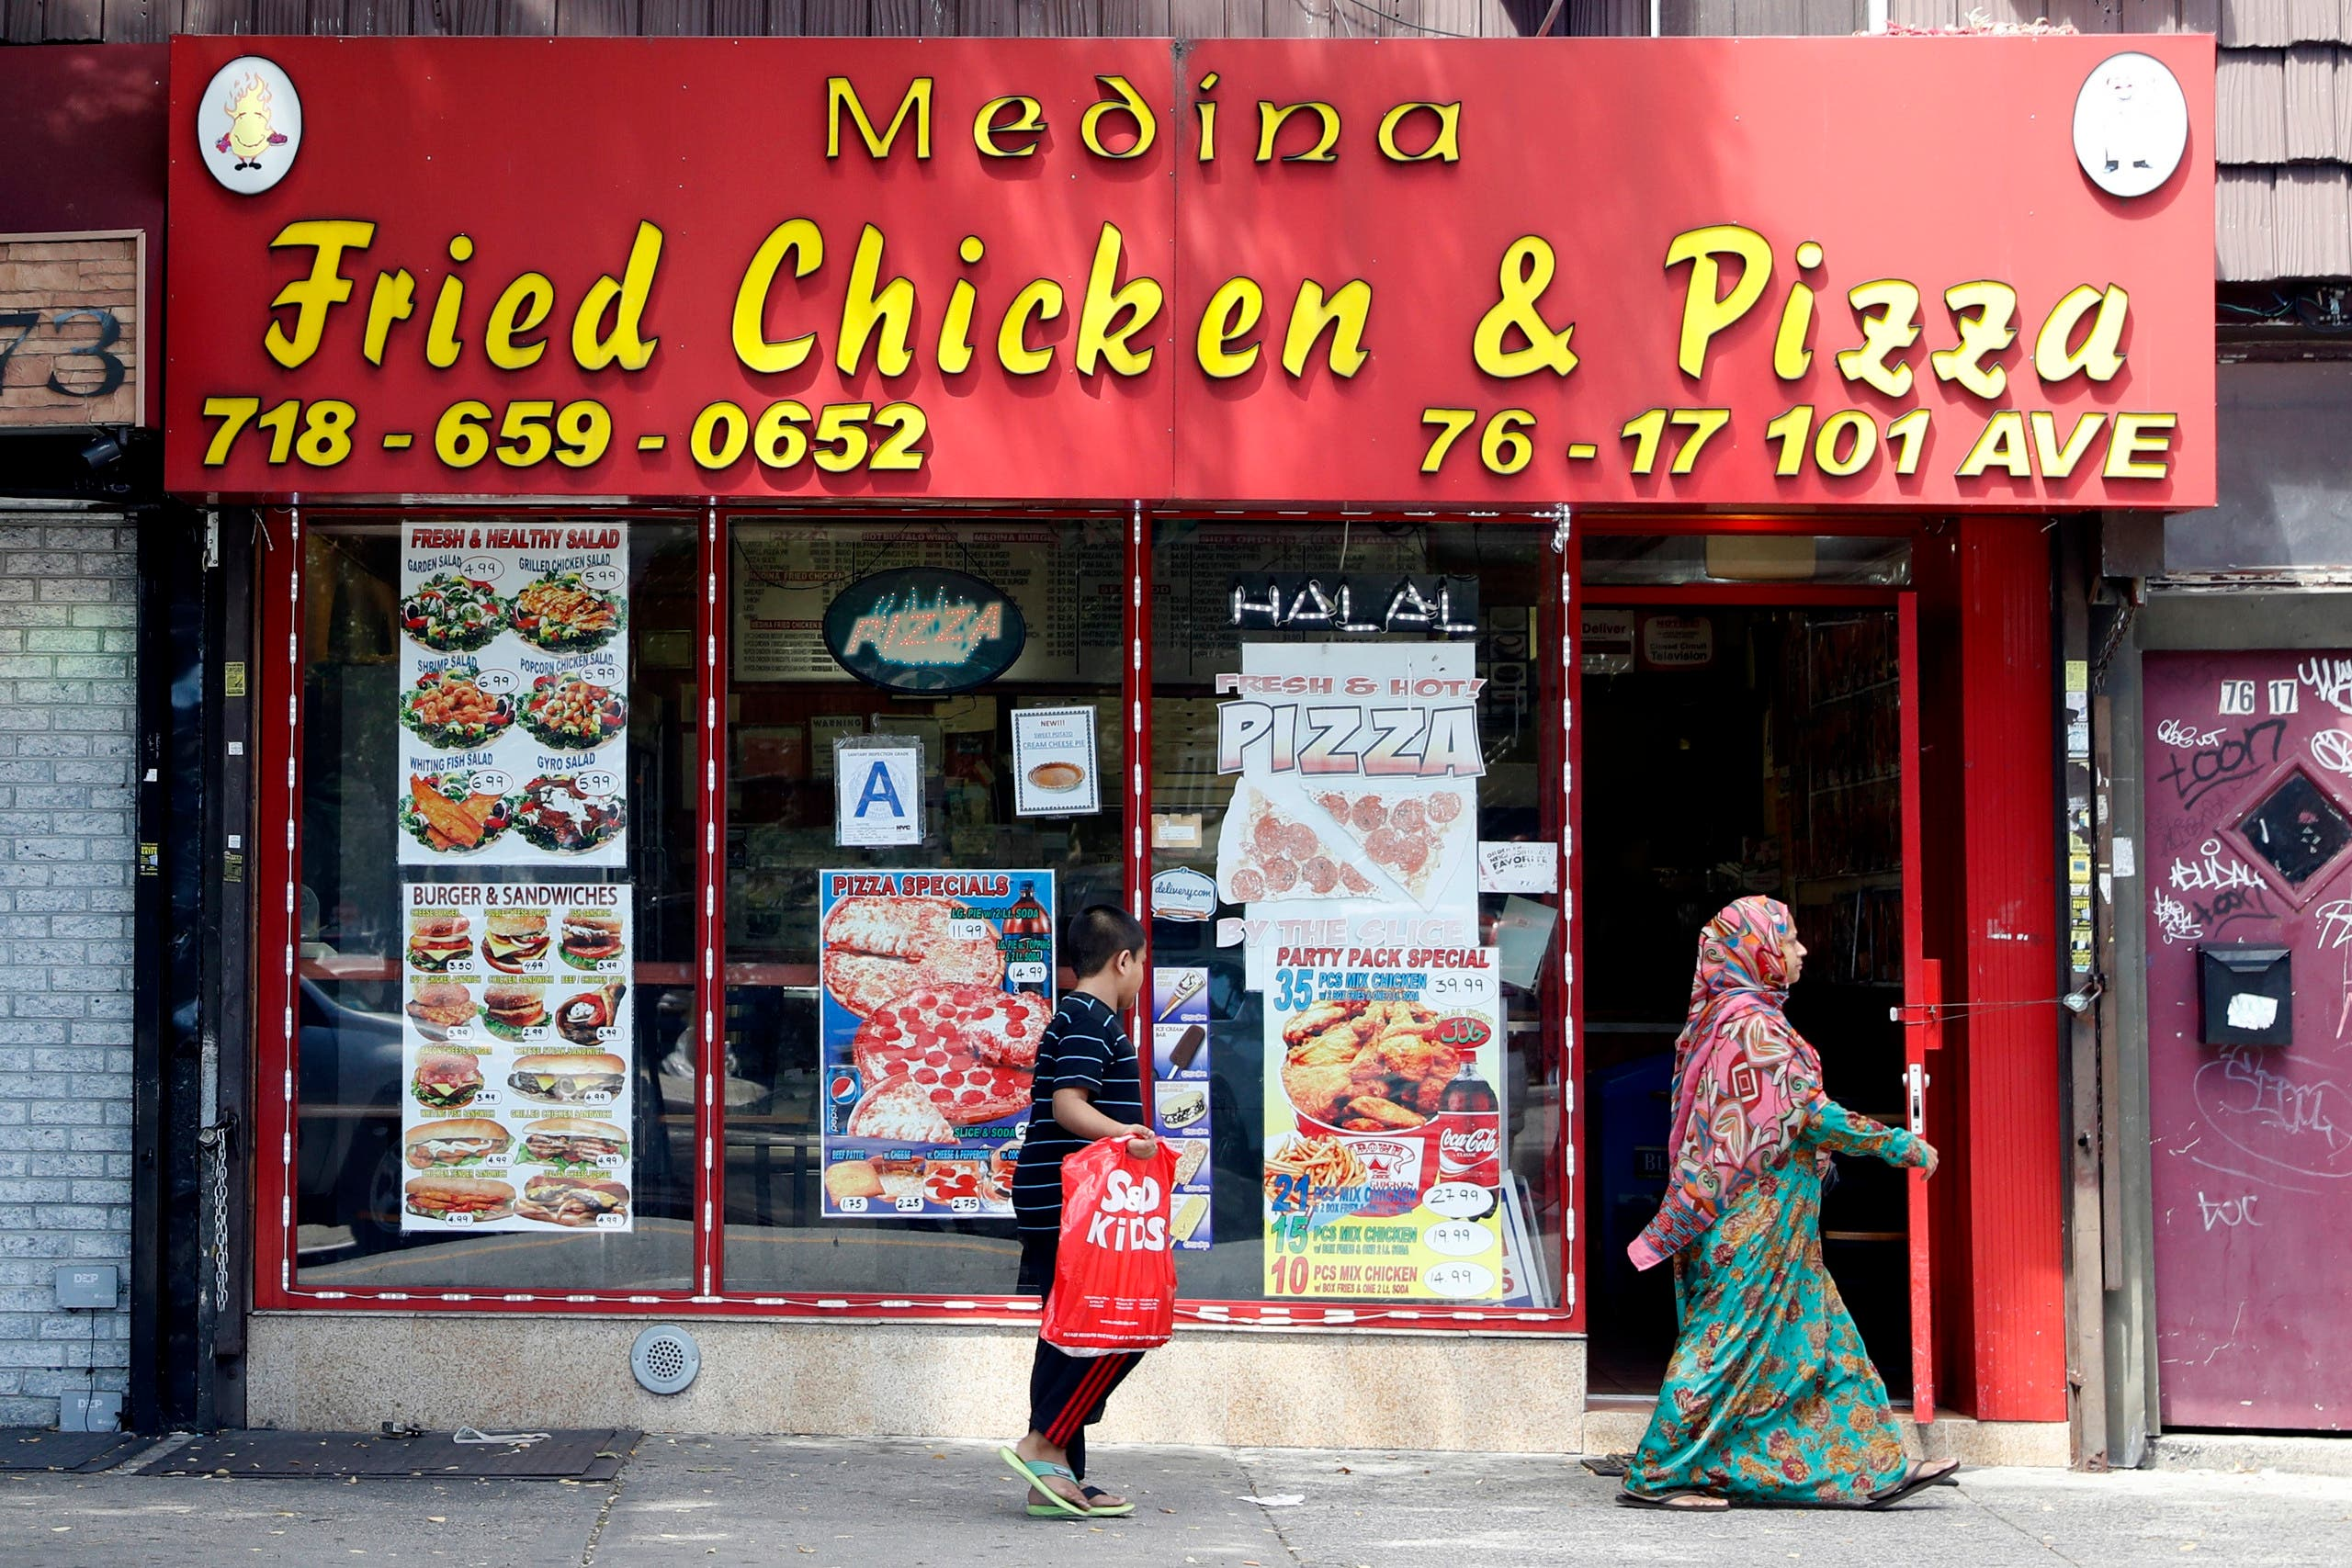 In this Wednesday, Aug. 17, 2016, photo a Muslim woman and her son walk past a Halal restaurant in the Ozone Park neighborhood of the Queens borough of New York. The shooting of an imam and his assistant near their New York mosque has unnerved Muslim residents of the Ozone Park section of Queens. (AP)